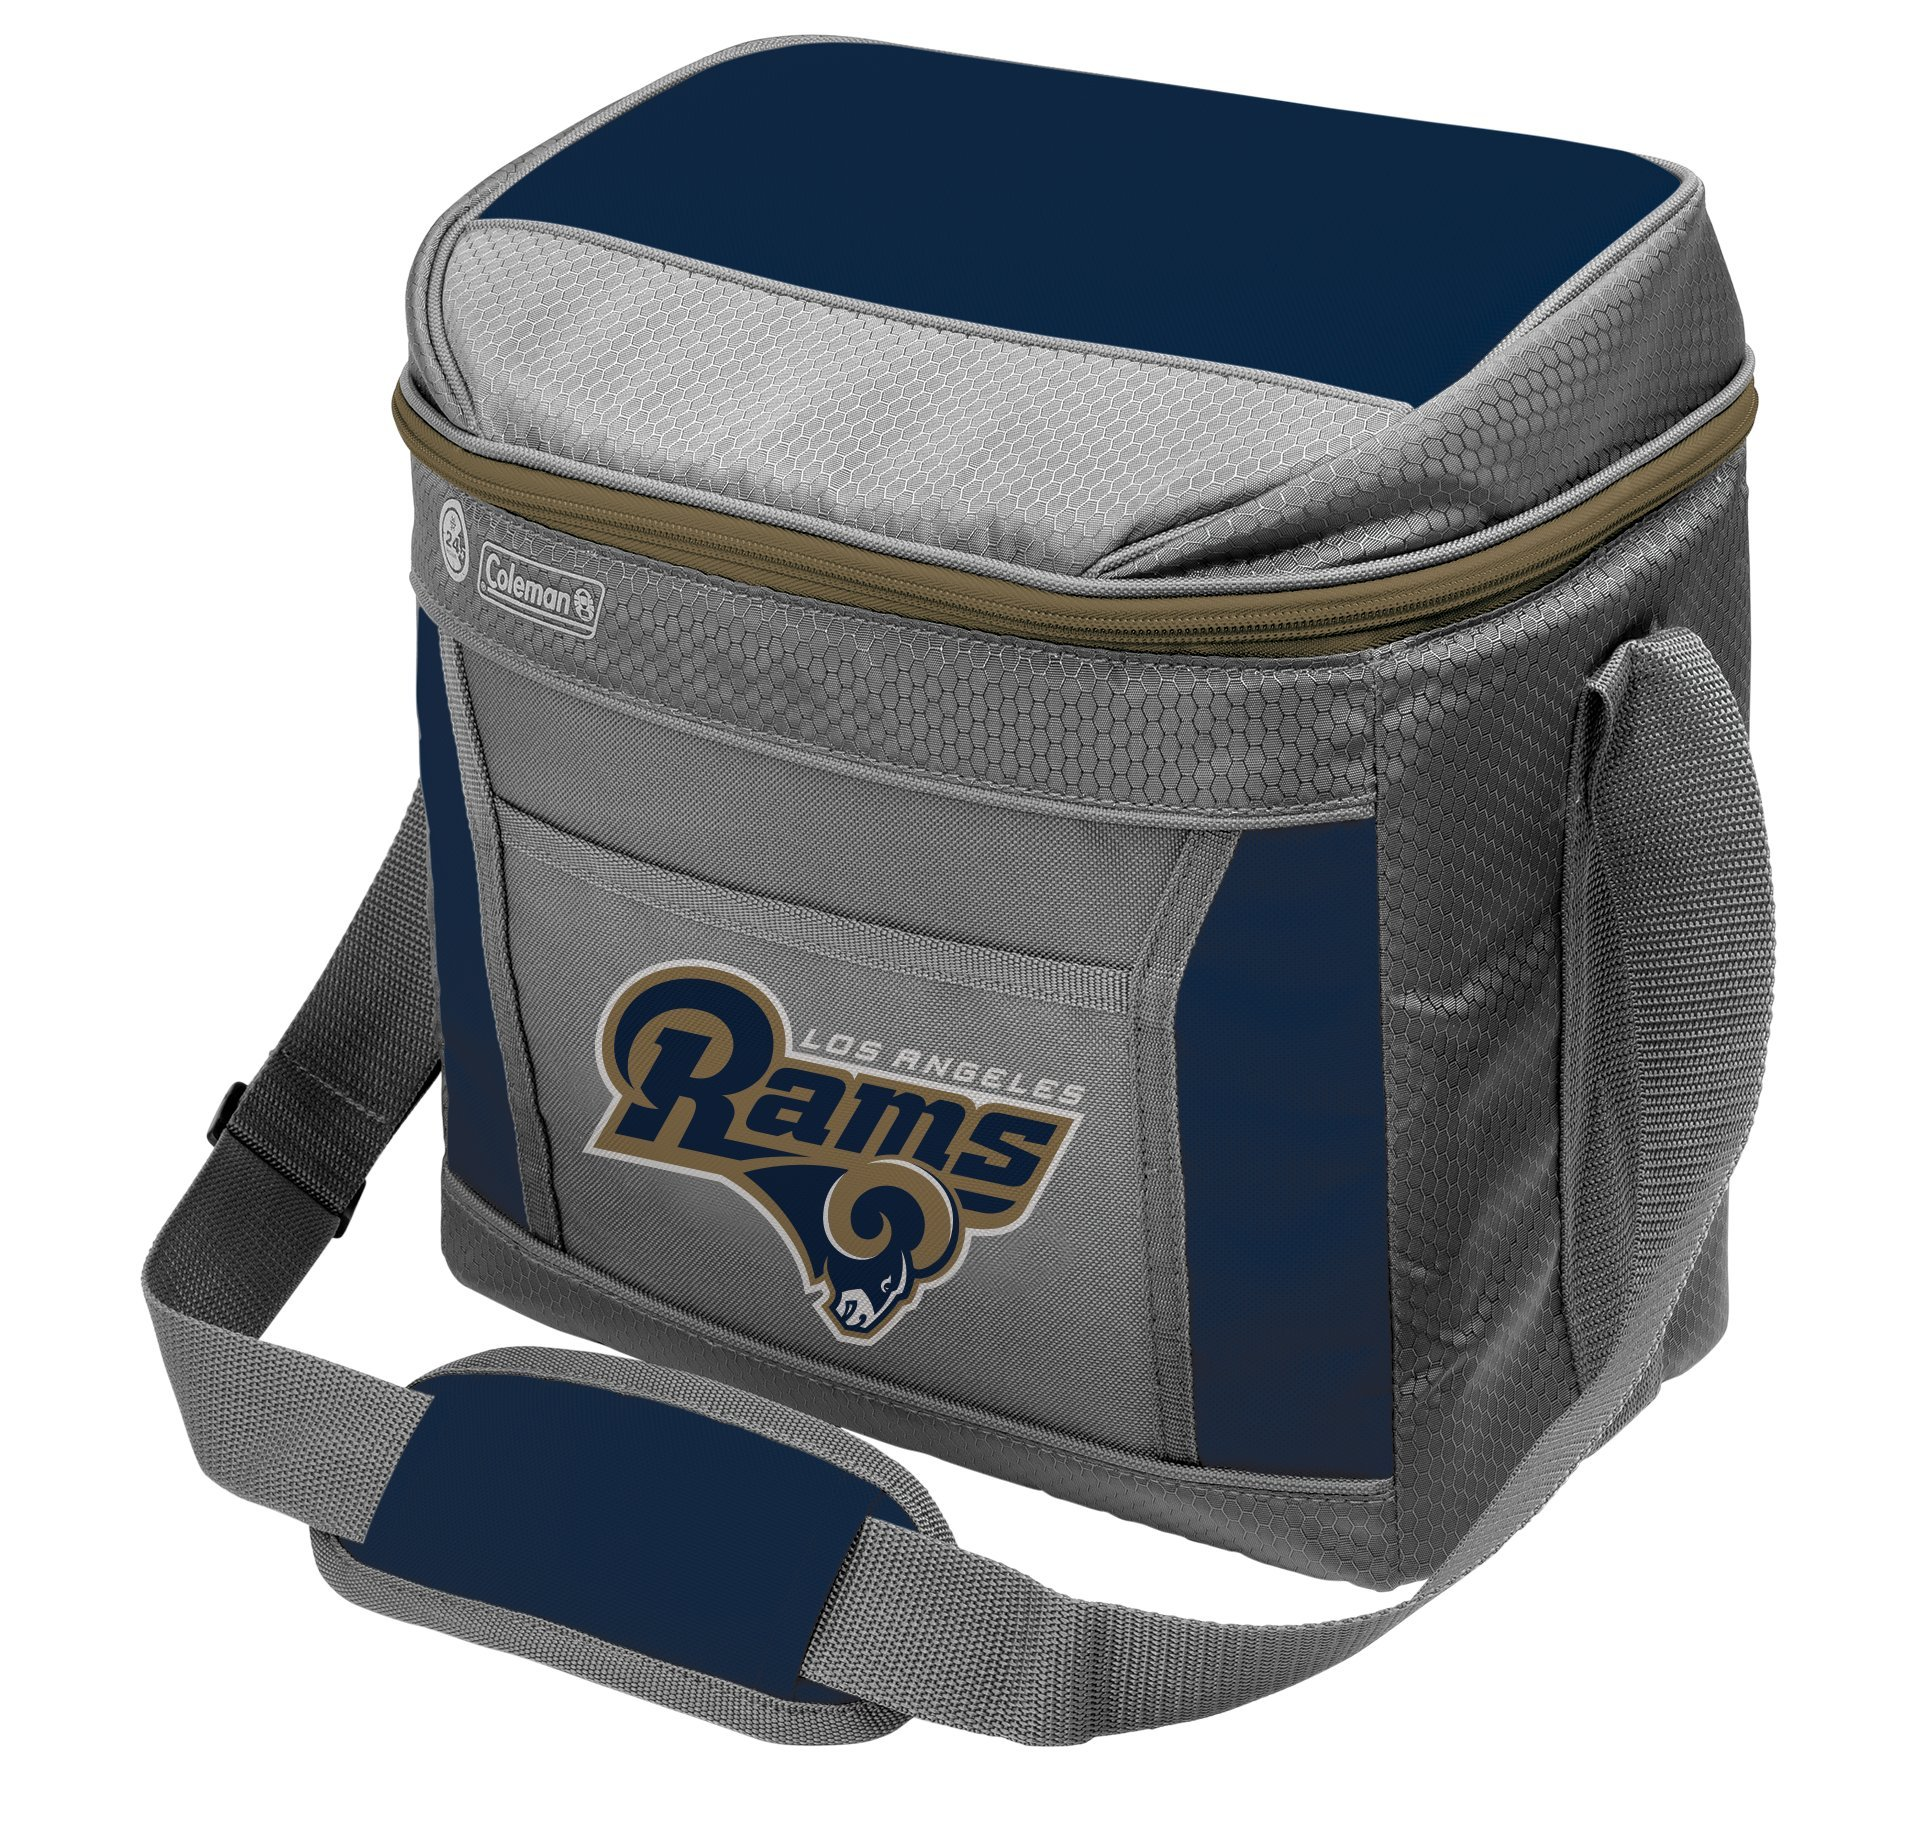 Coleman NFL Soft-Sided Insulated Cooler Bag, 16-Can